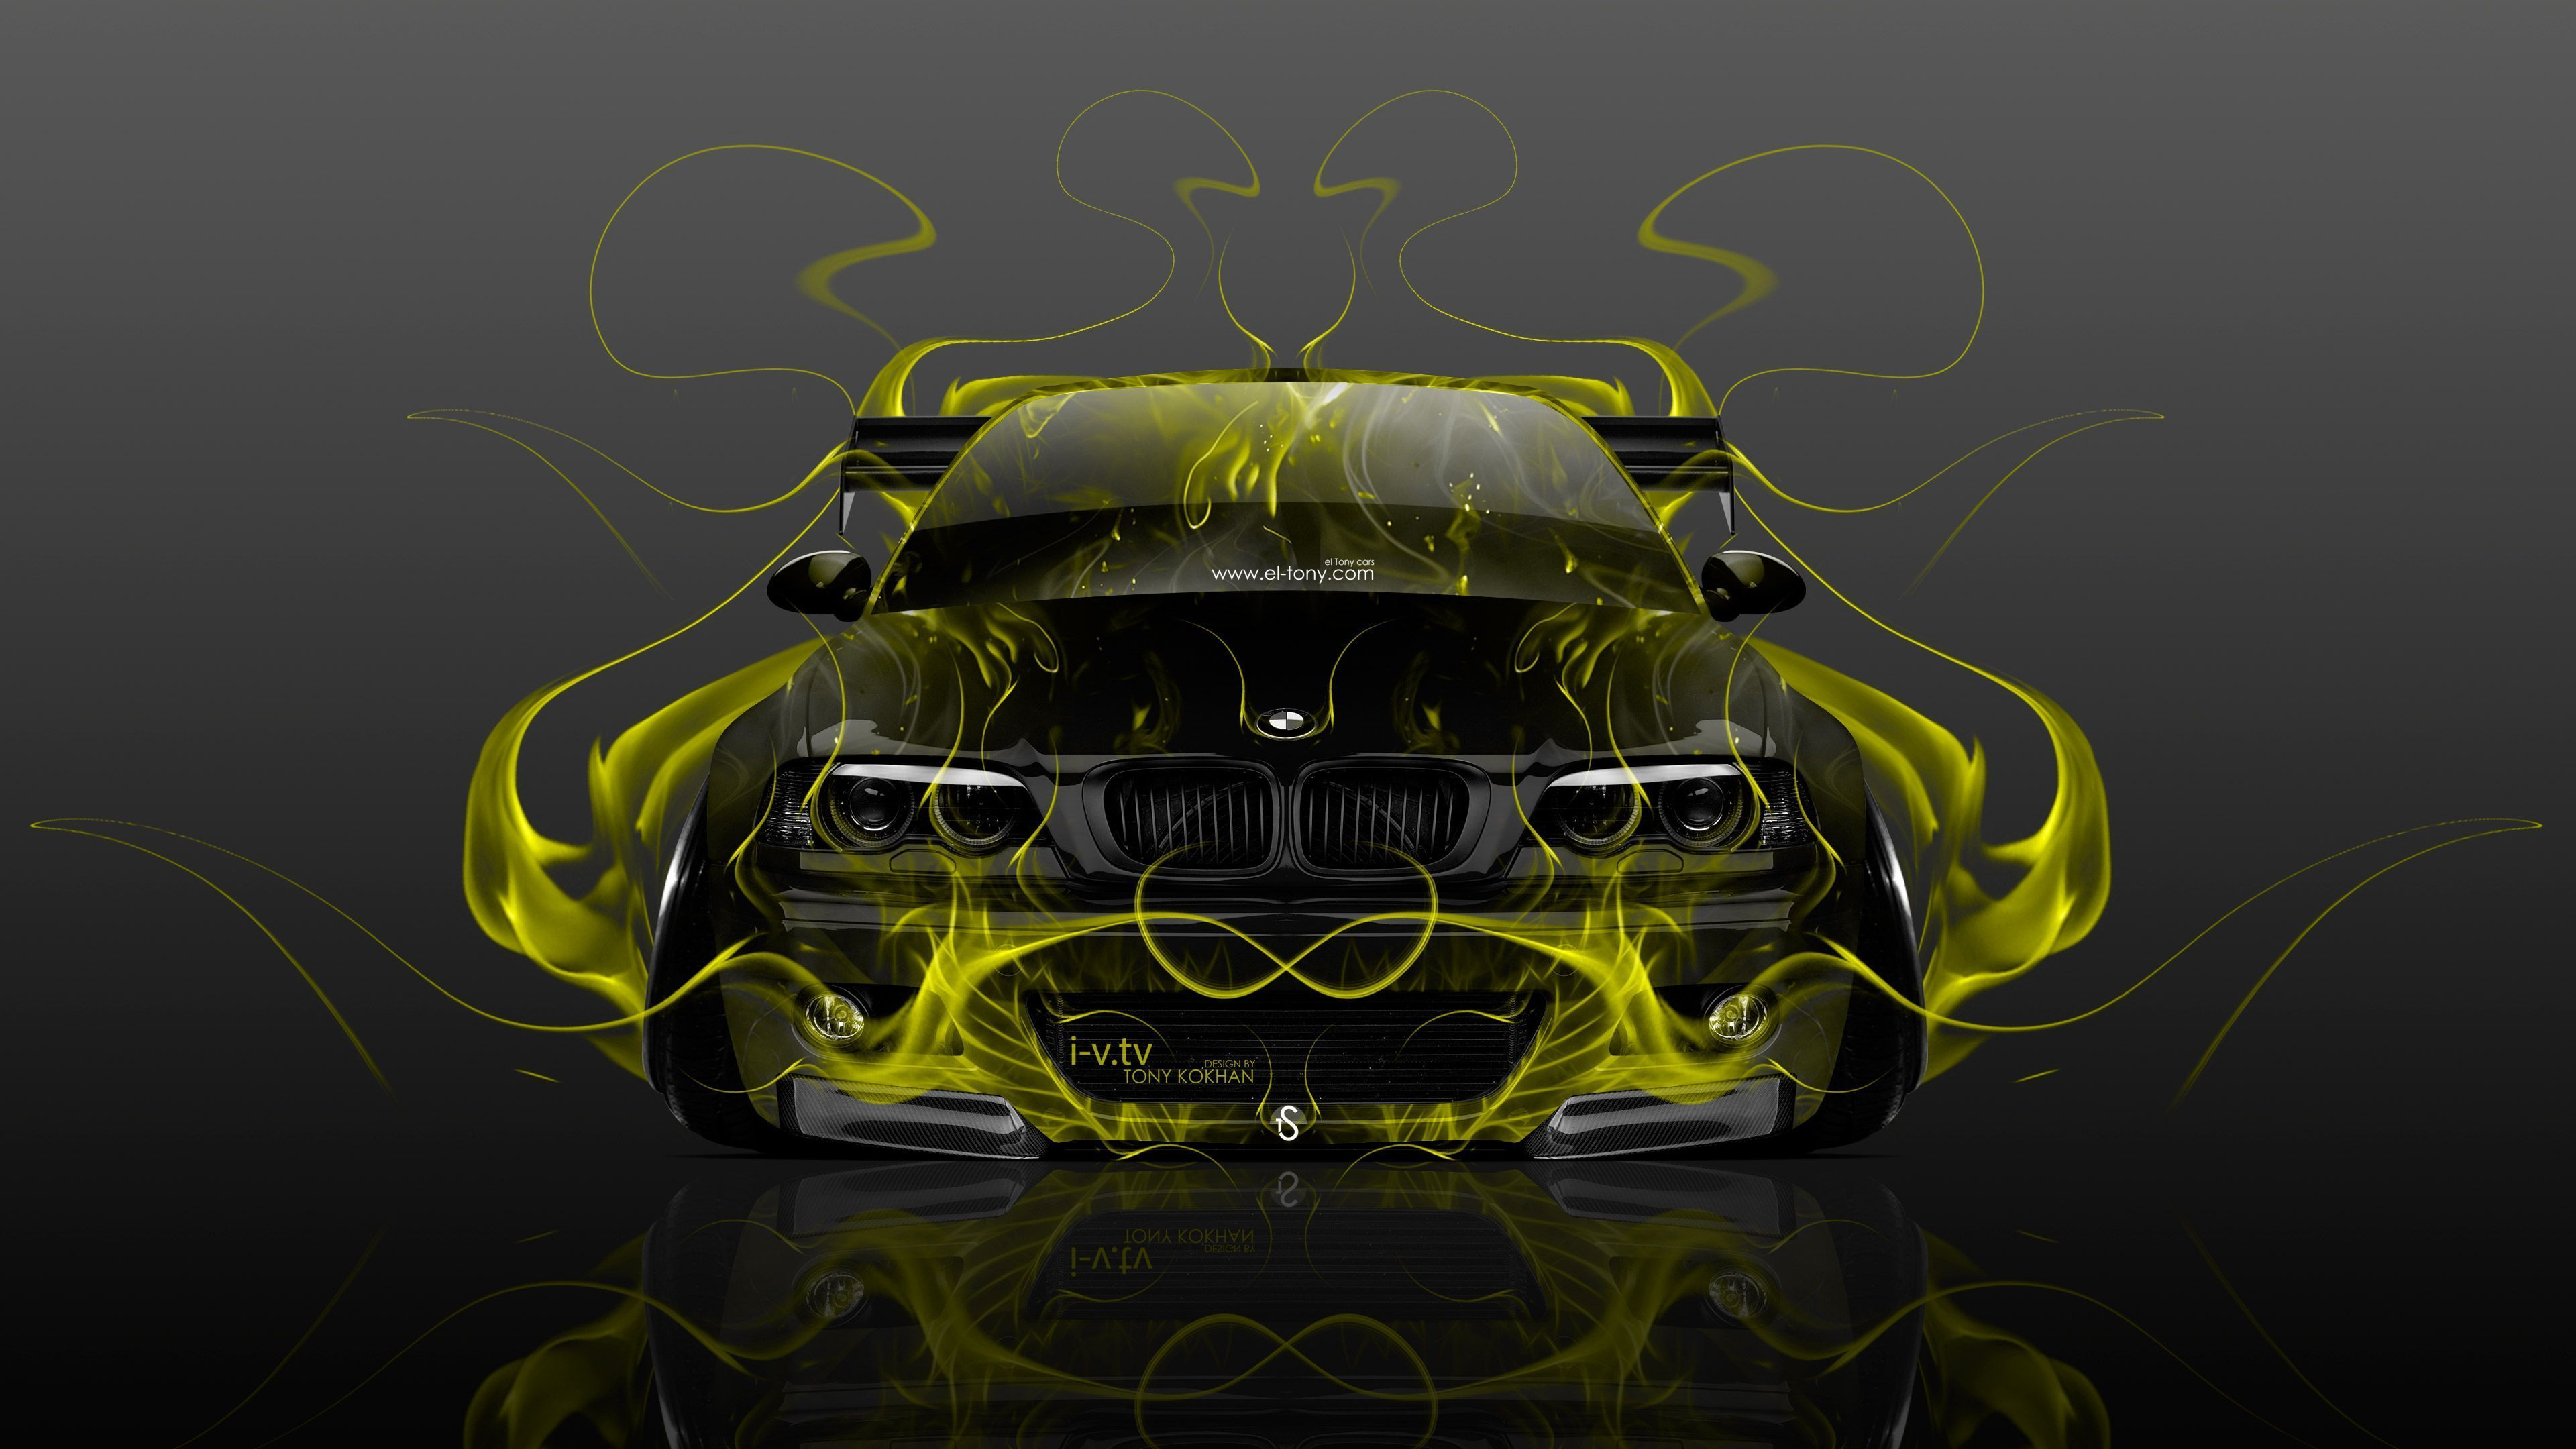 Charming BMW M3 E46 Tuning Front Fire Abstract Car 2015 Wallpapers El Tony .